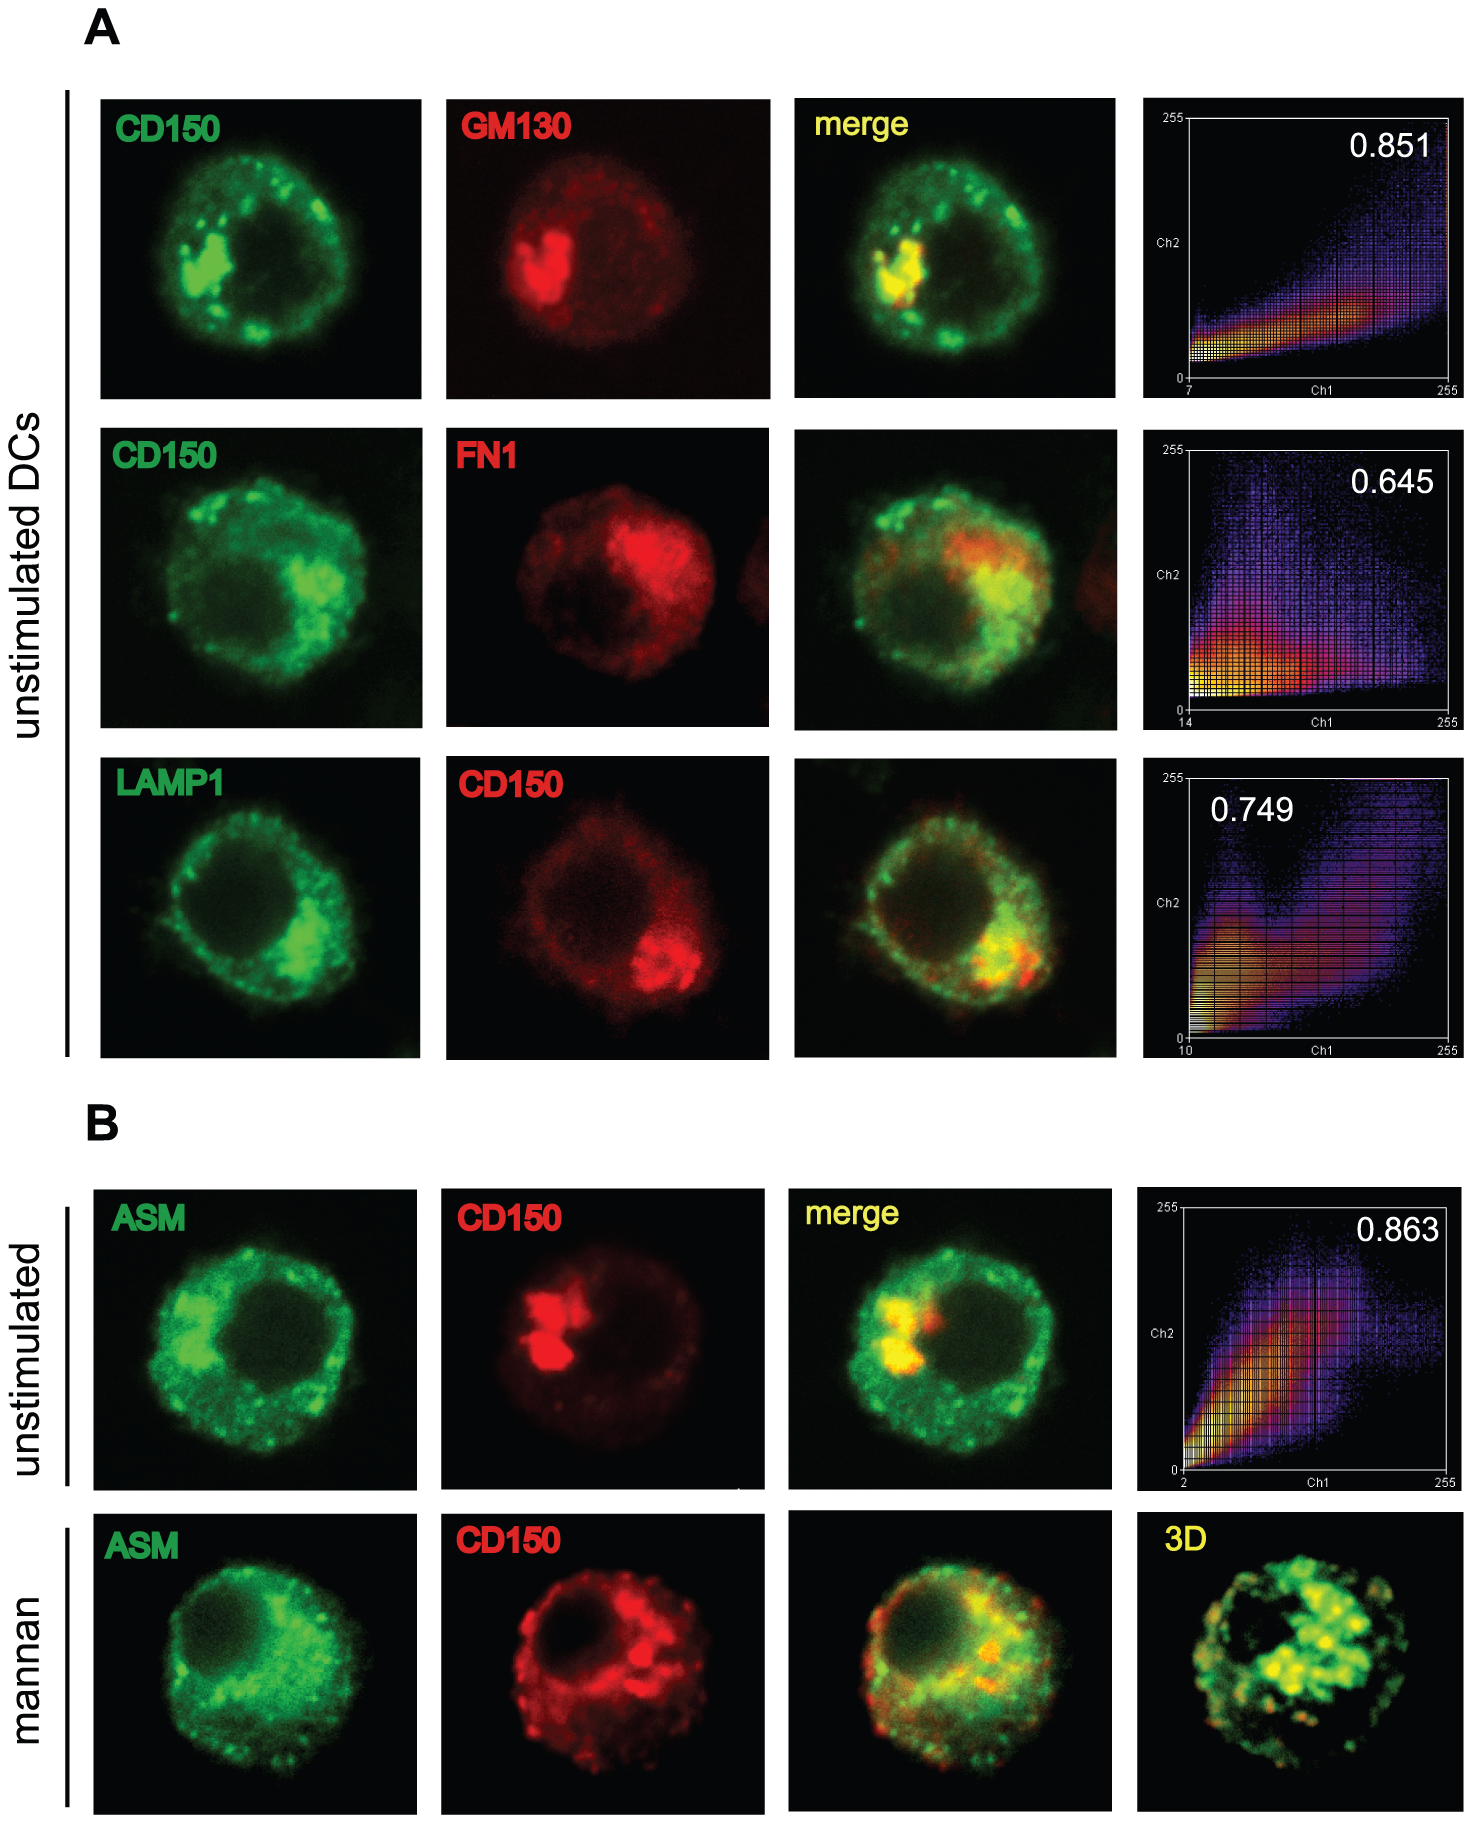 ASM is co-transported with CD150 from lysosomal compartments upon DC-SIGN ligation.